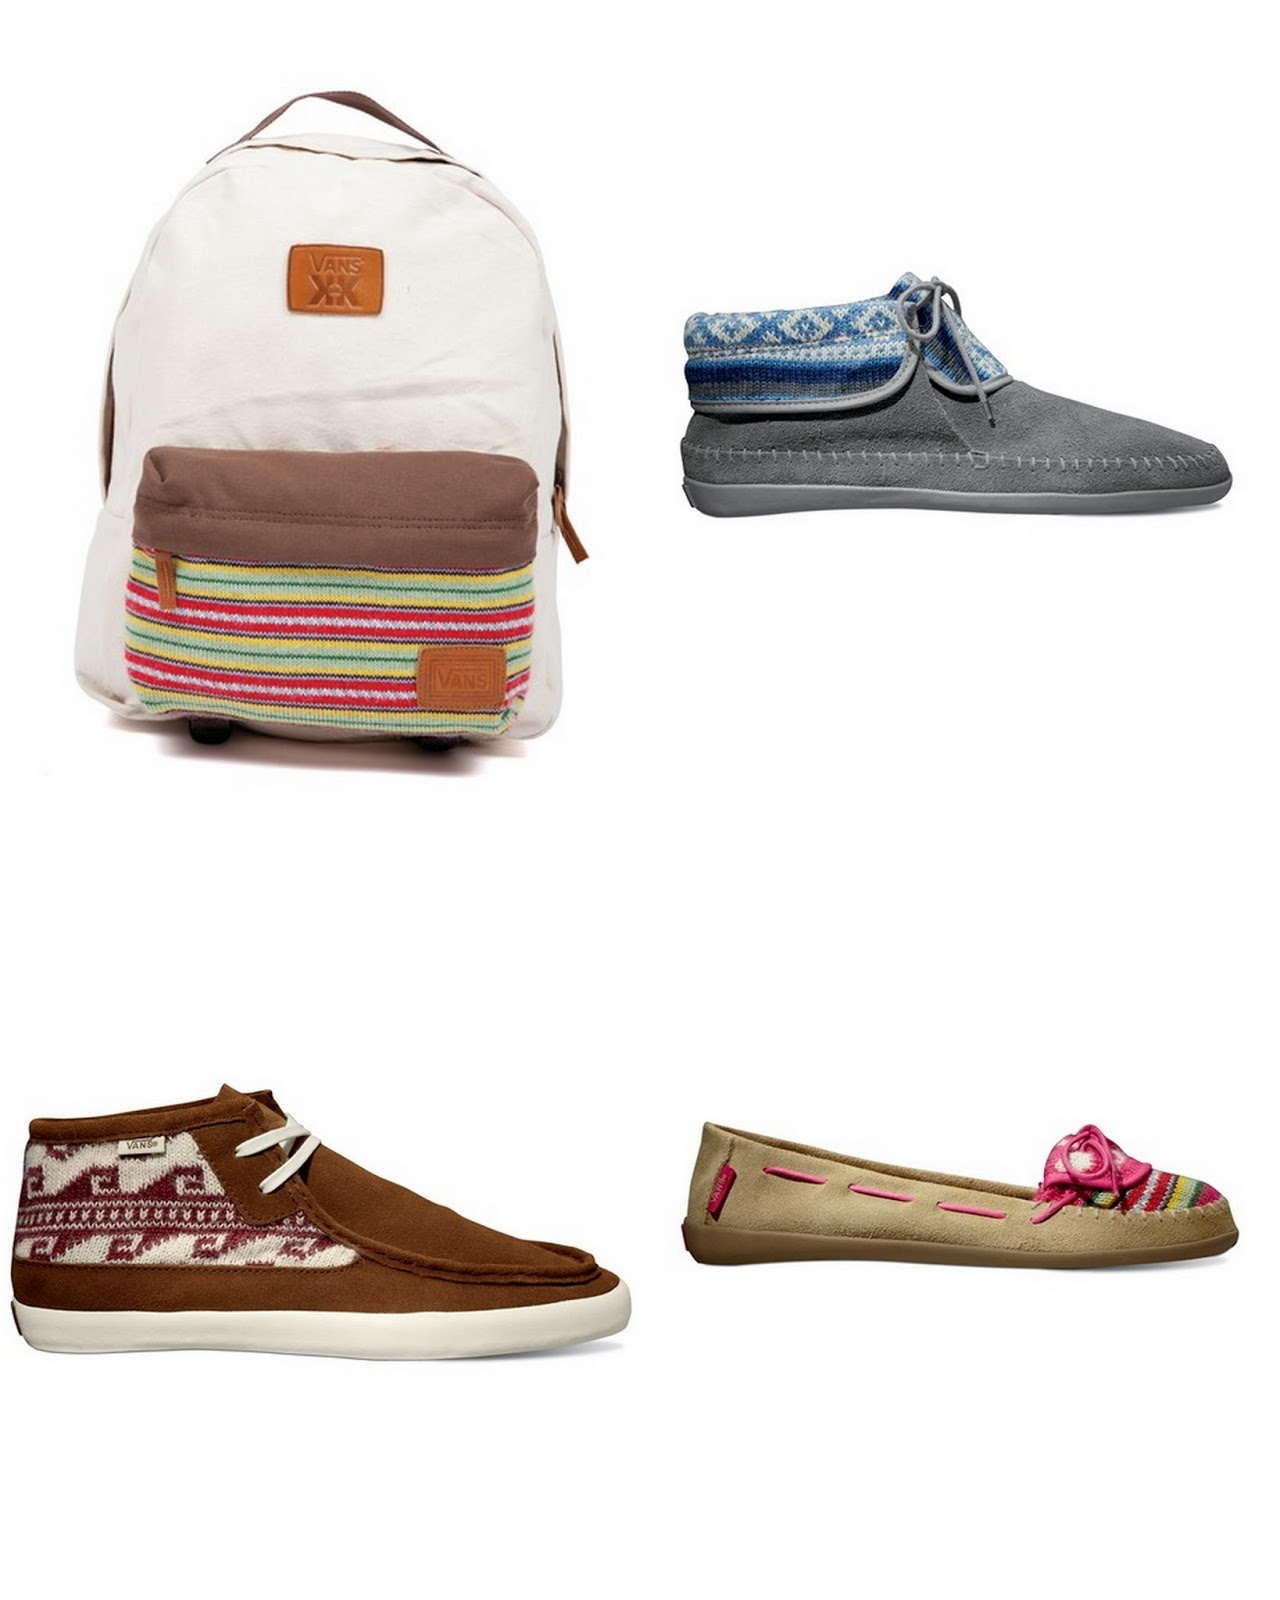 37d2ec1f3a ... Vans x Krochet Kids The Product  Two women s surf sliders